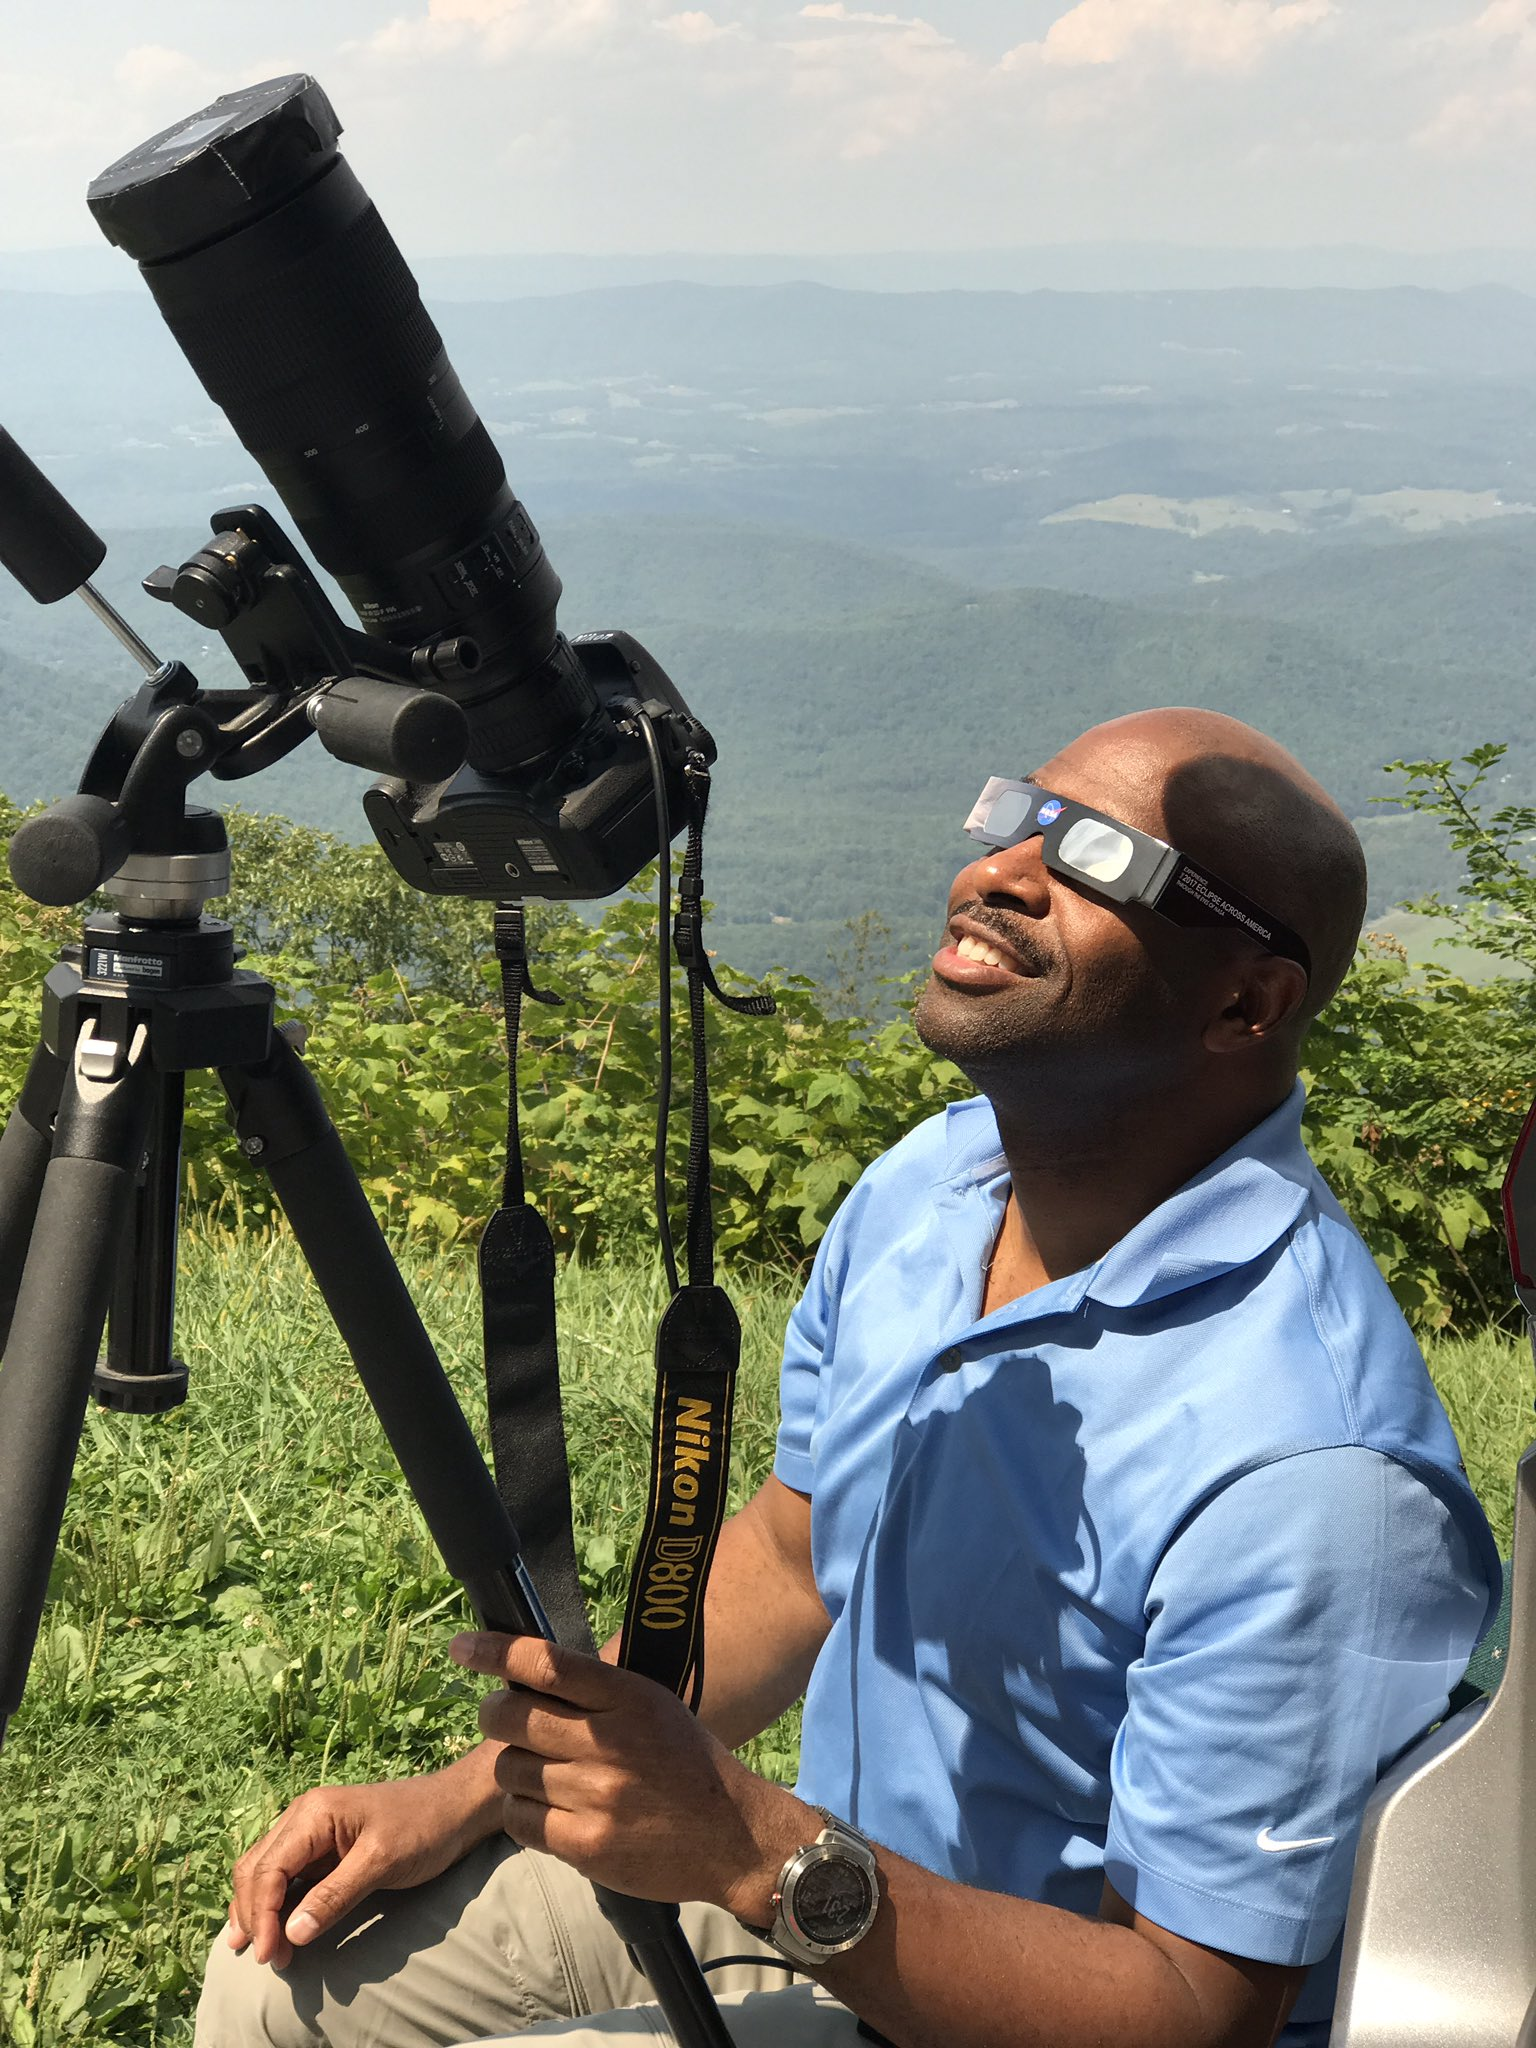 Thanks @NASA for what you do to inspire the young and old Explorers. #EclipseSolar2017 ��❤️���������� https://t.co/nJleFYEWi2